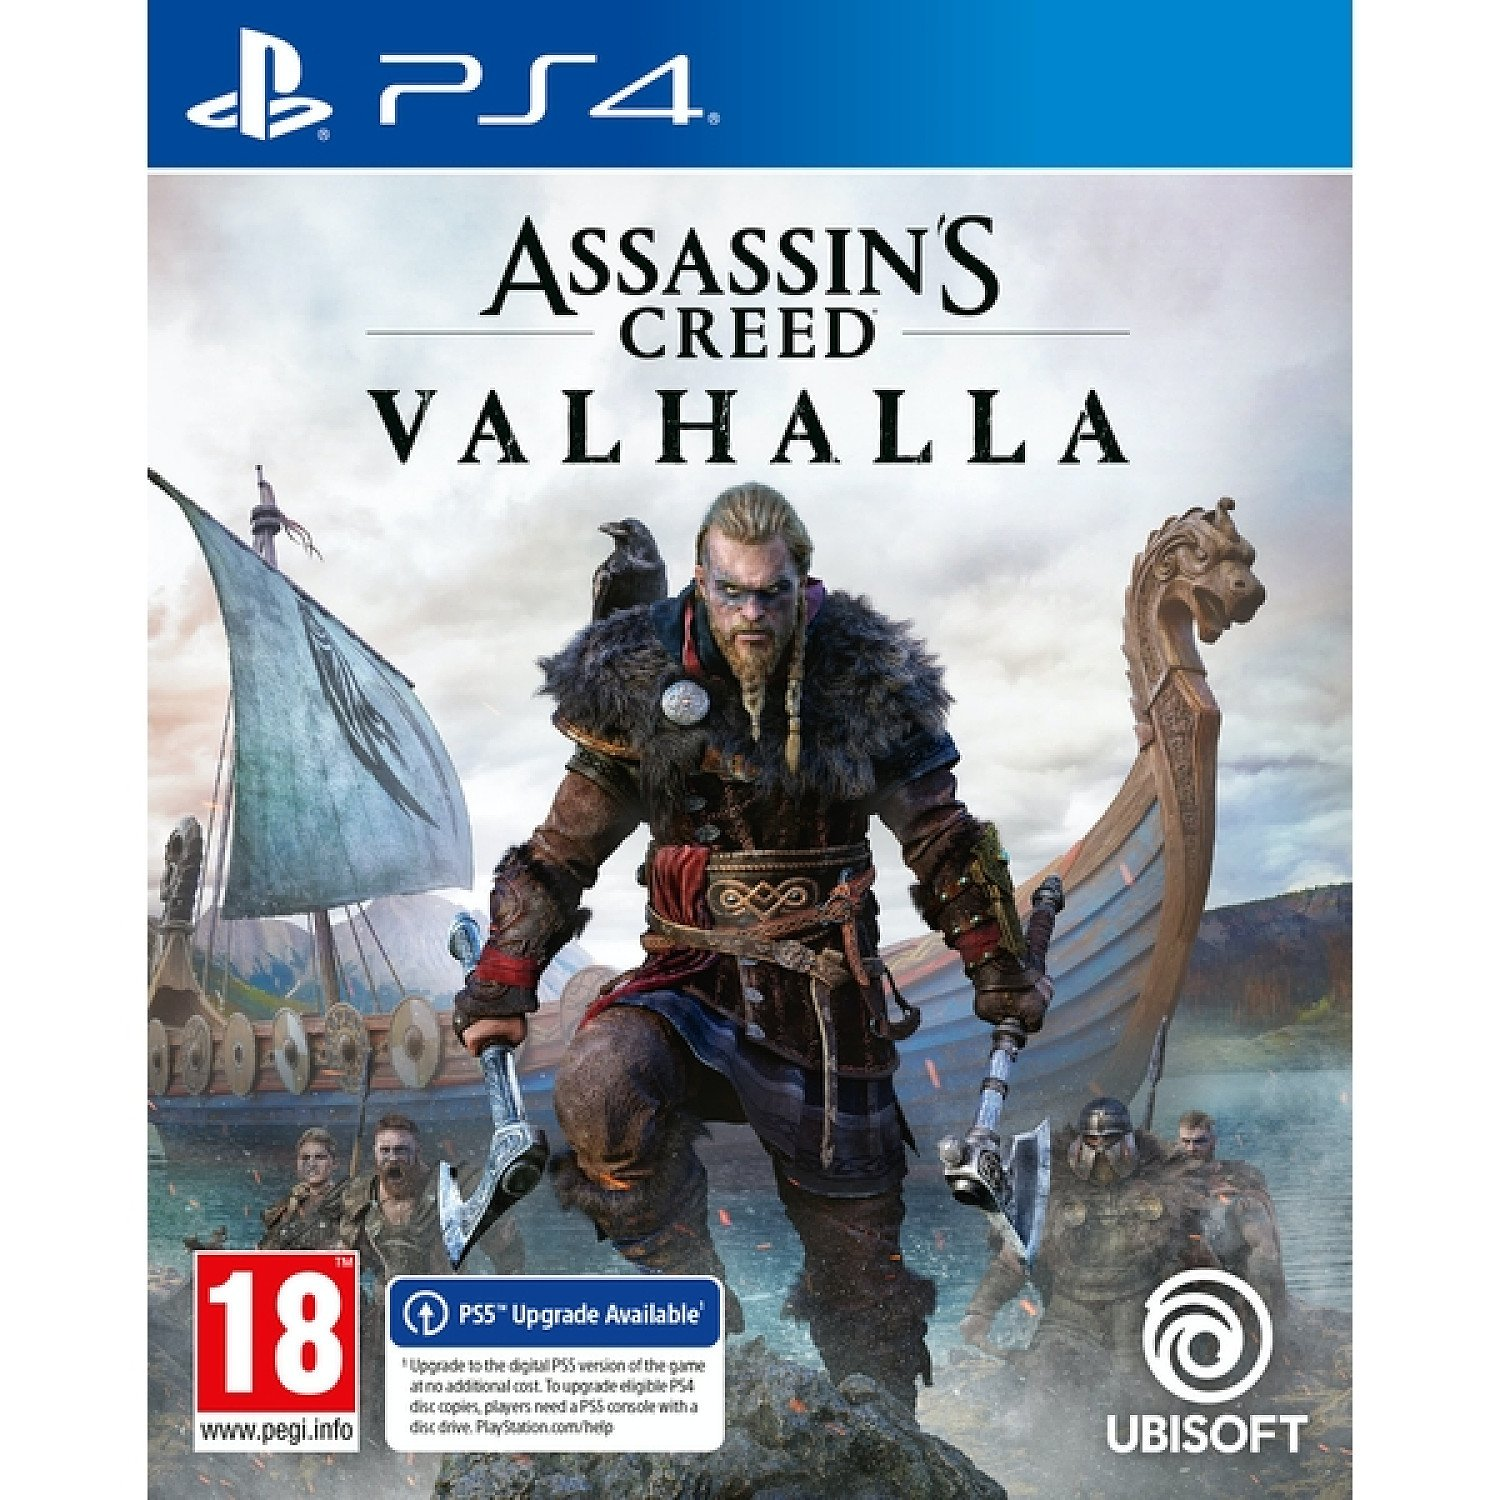 SAVE £2.00 - ********'s Creed Valhalla PS4 Game!